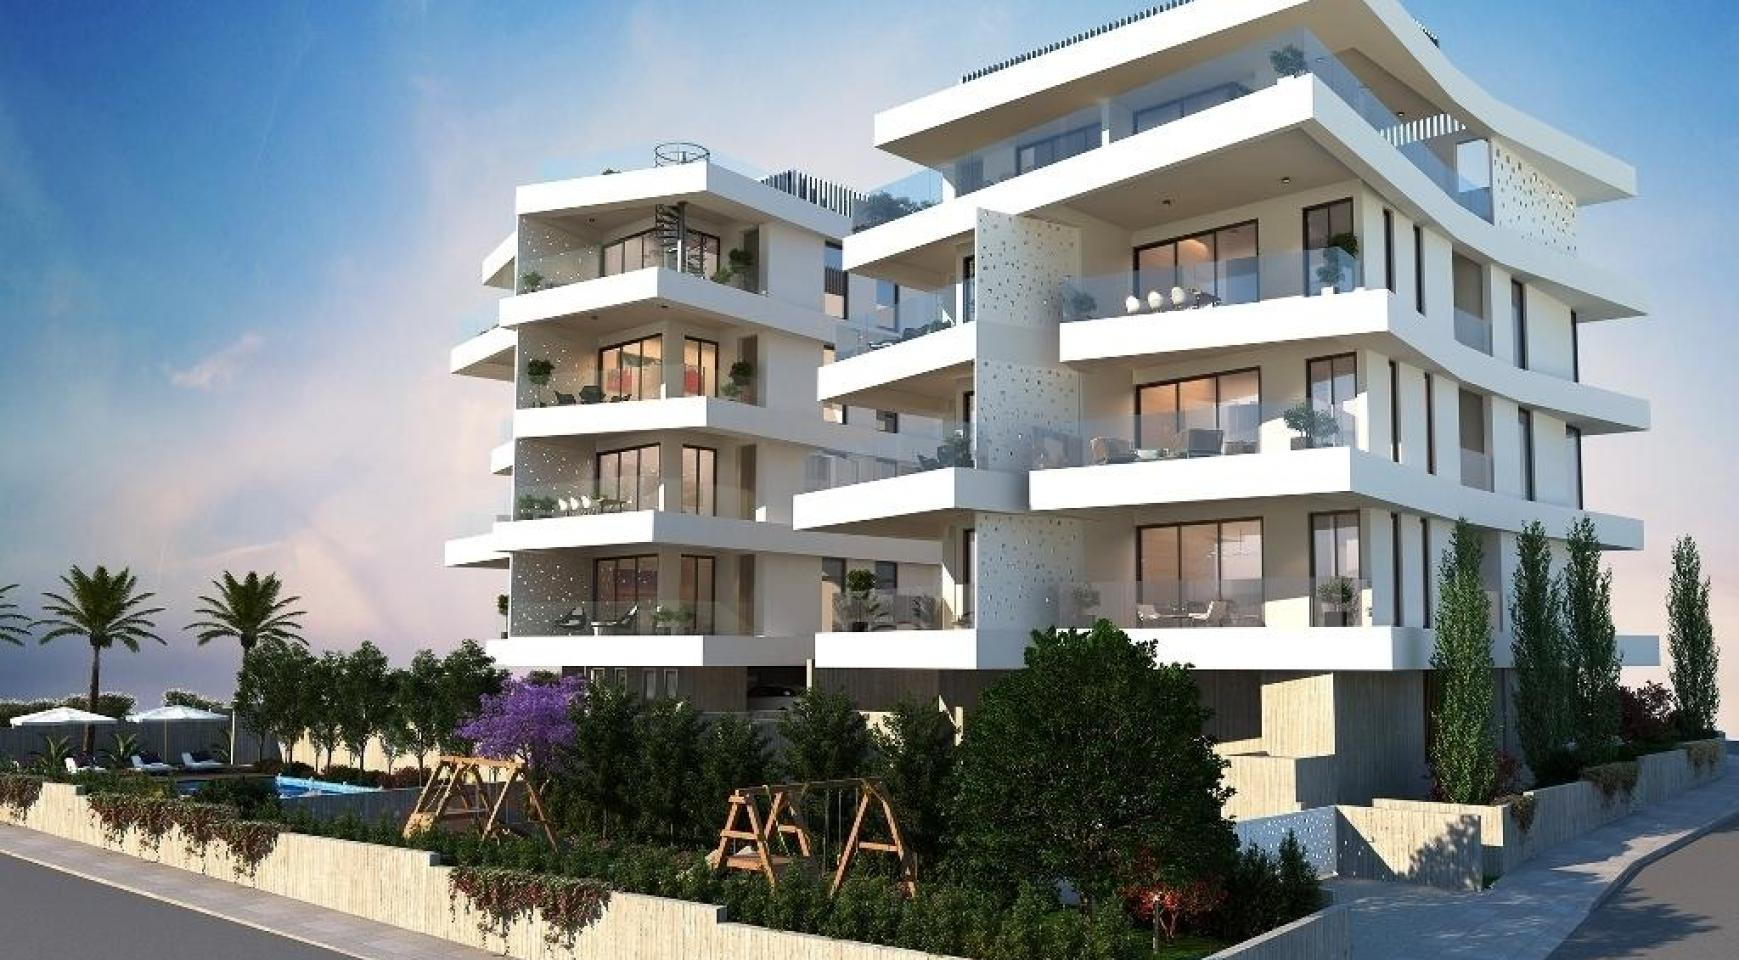 New 3 Bedroom Apartment in a Contemporary Building in Germasogeia - 6